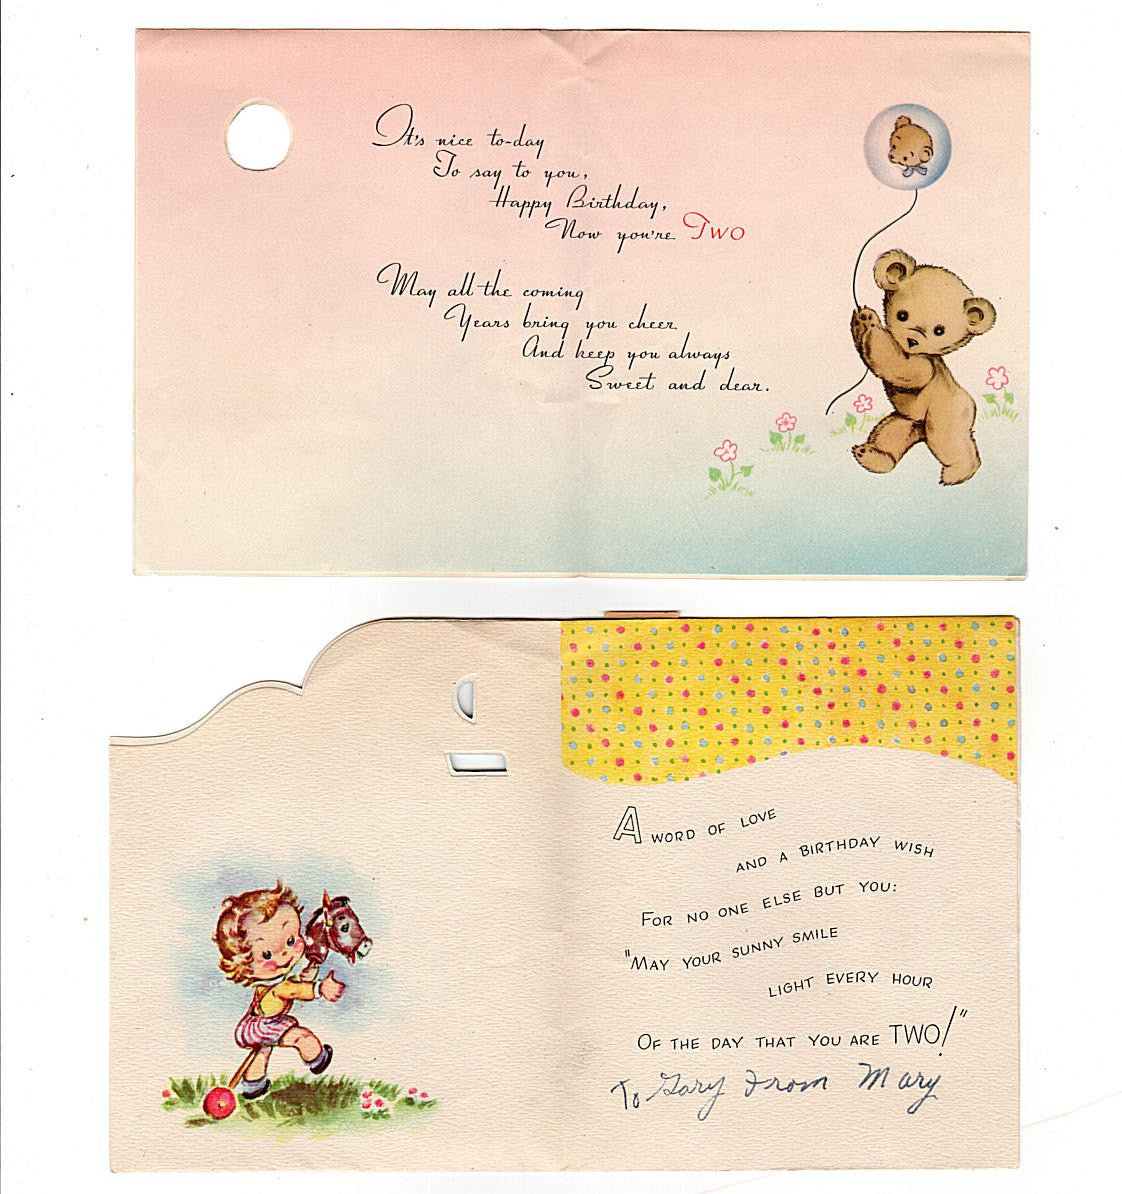 Avid vintage vintage collectibles vintage 1950s two year old birthday cards lot of 2 duck rocking toy stick horse doubl kristyandbryce Choice Image